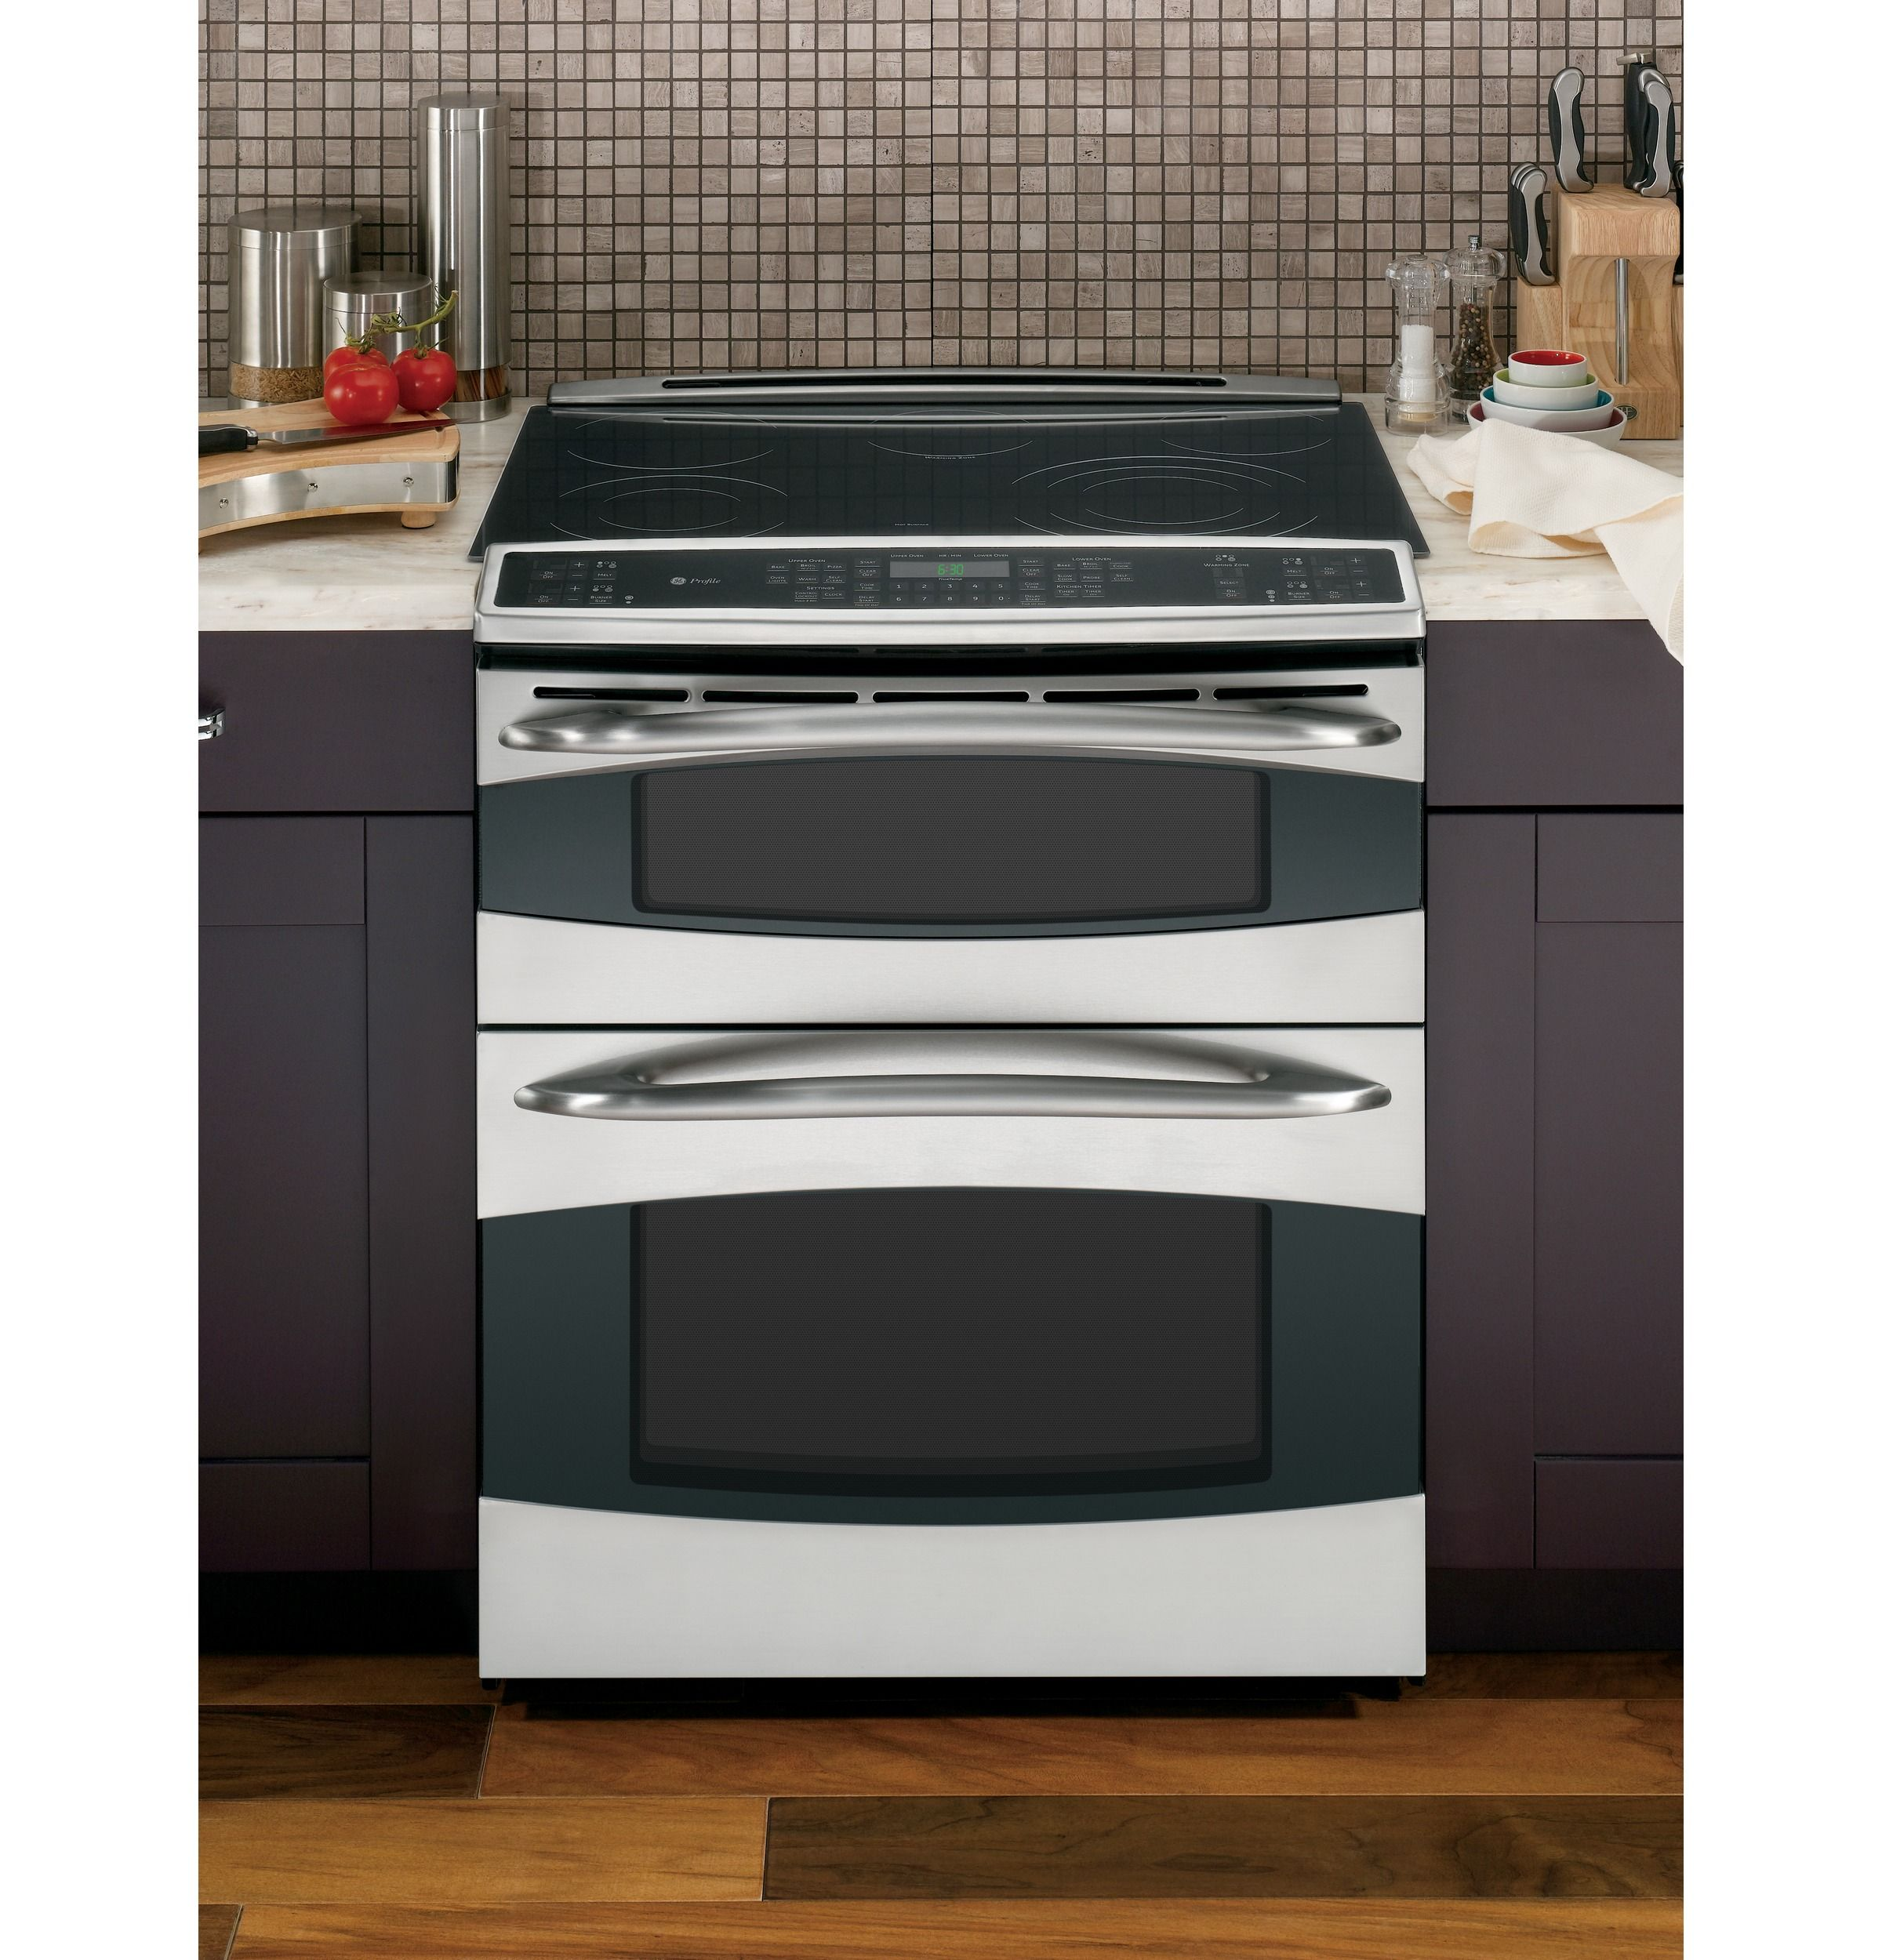 Ps978stss Ge Profile Slide In Double Oven Electric Range Ge